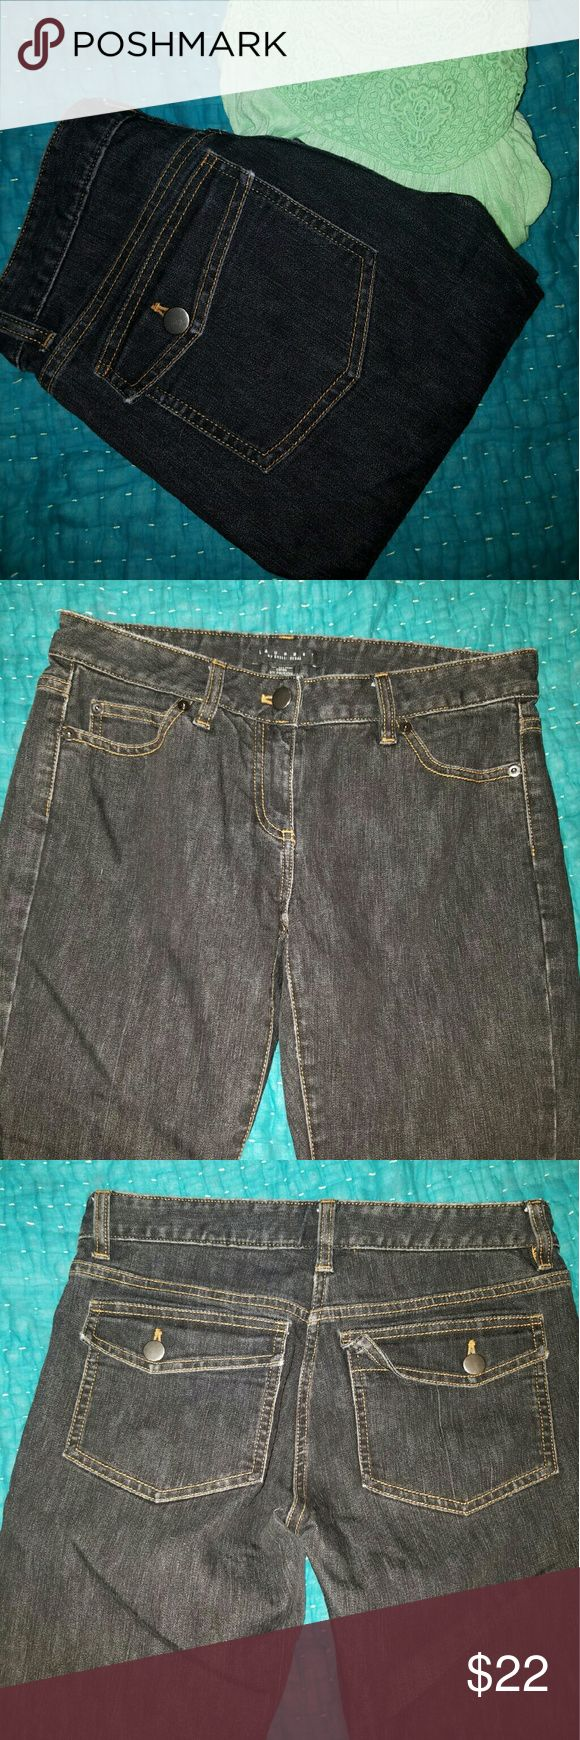 Laundry Shelli Segal Black Jeans Like new black jeans from Laundry Shelli Segal. Bootcut. Five pocket styling with flaps. Size 2. Waist 15 inches flat. Inseam 30 inches. Leg opening 8 inches. Laundry by Shelli Segal Jeans Boot Cut